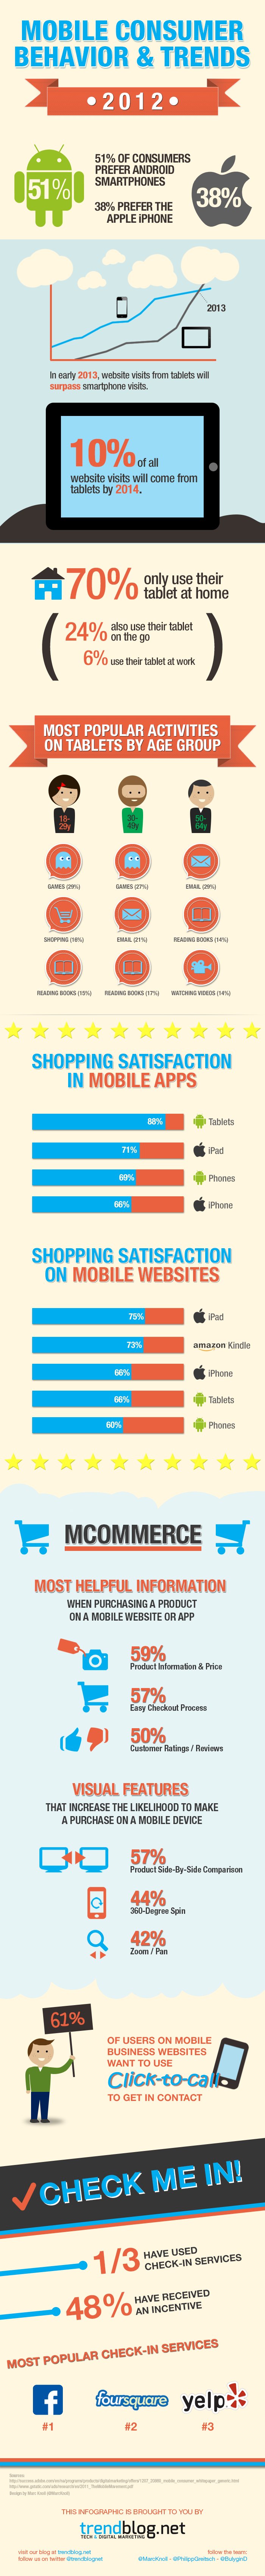 infographic about mobile consumer behavior and trends 2012 by trendblog.net